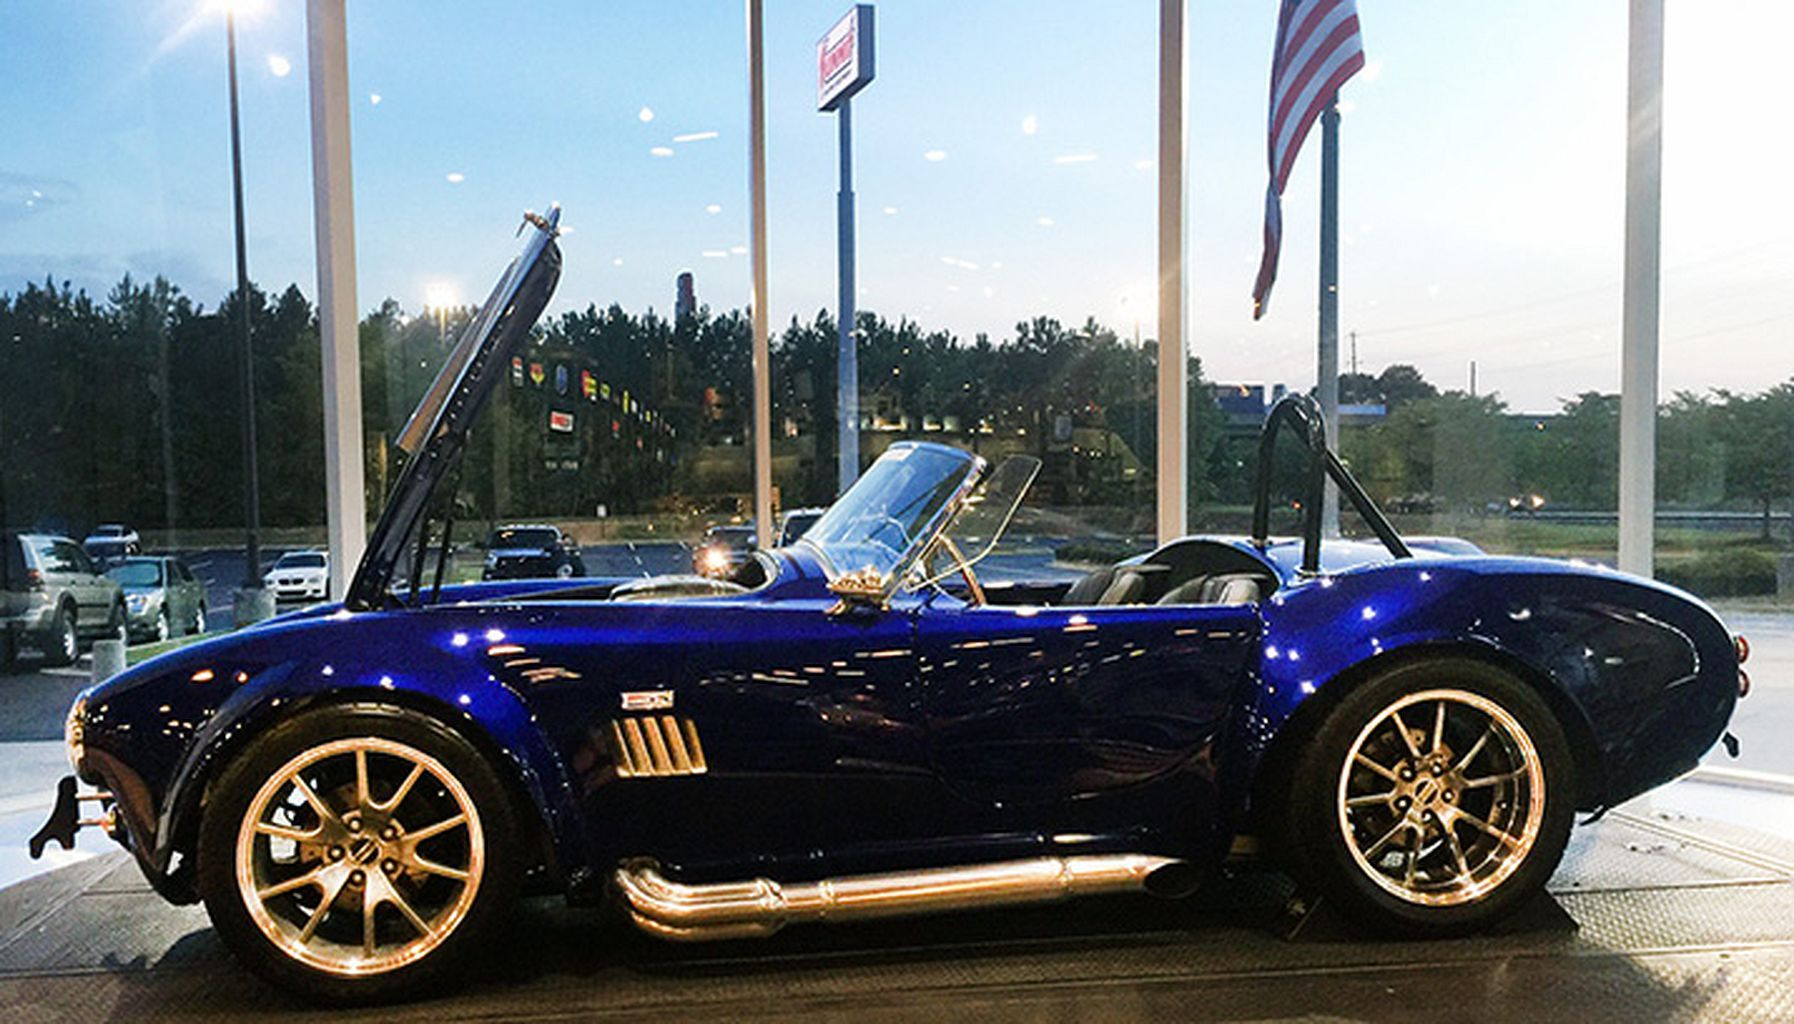 Best 99 Shelby Ac Cobra 427 Kit Cars Awesome Https Www Mobmasker Com Best 99 Shelby Ac Cobra 427 Kit Cars Awesome Ac Cobra Ford Shelby Cobra 427 Cobra